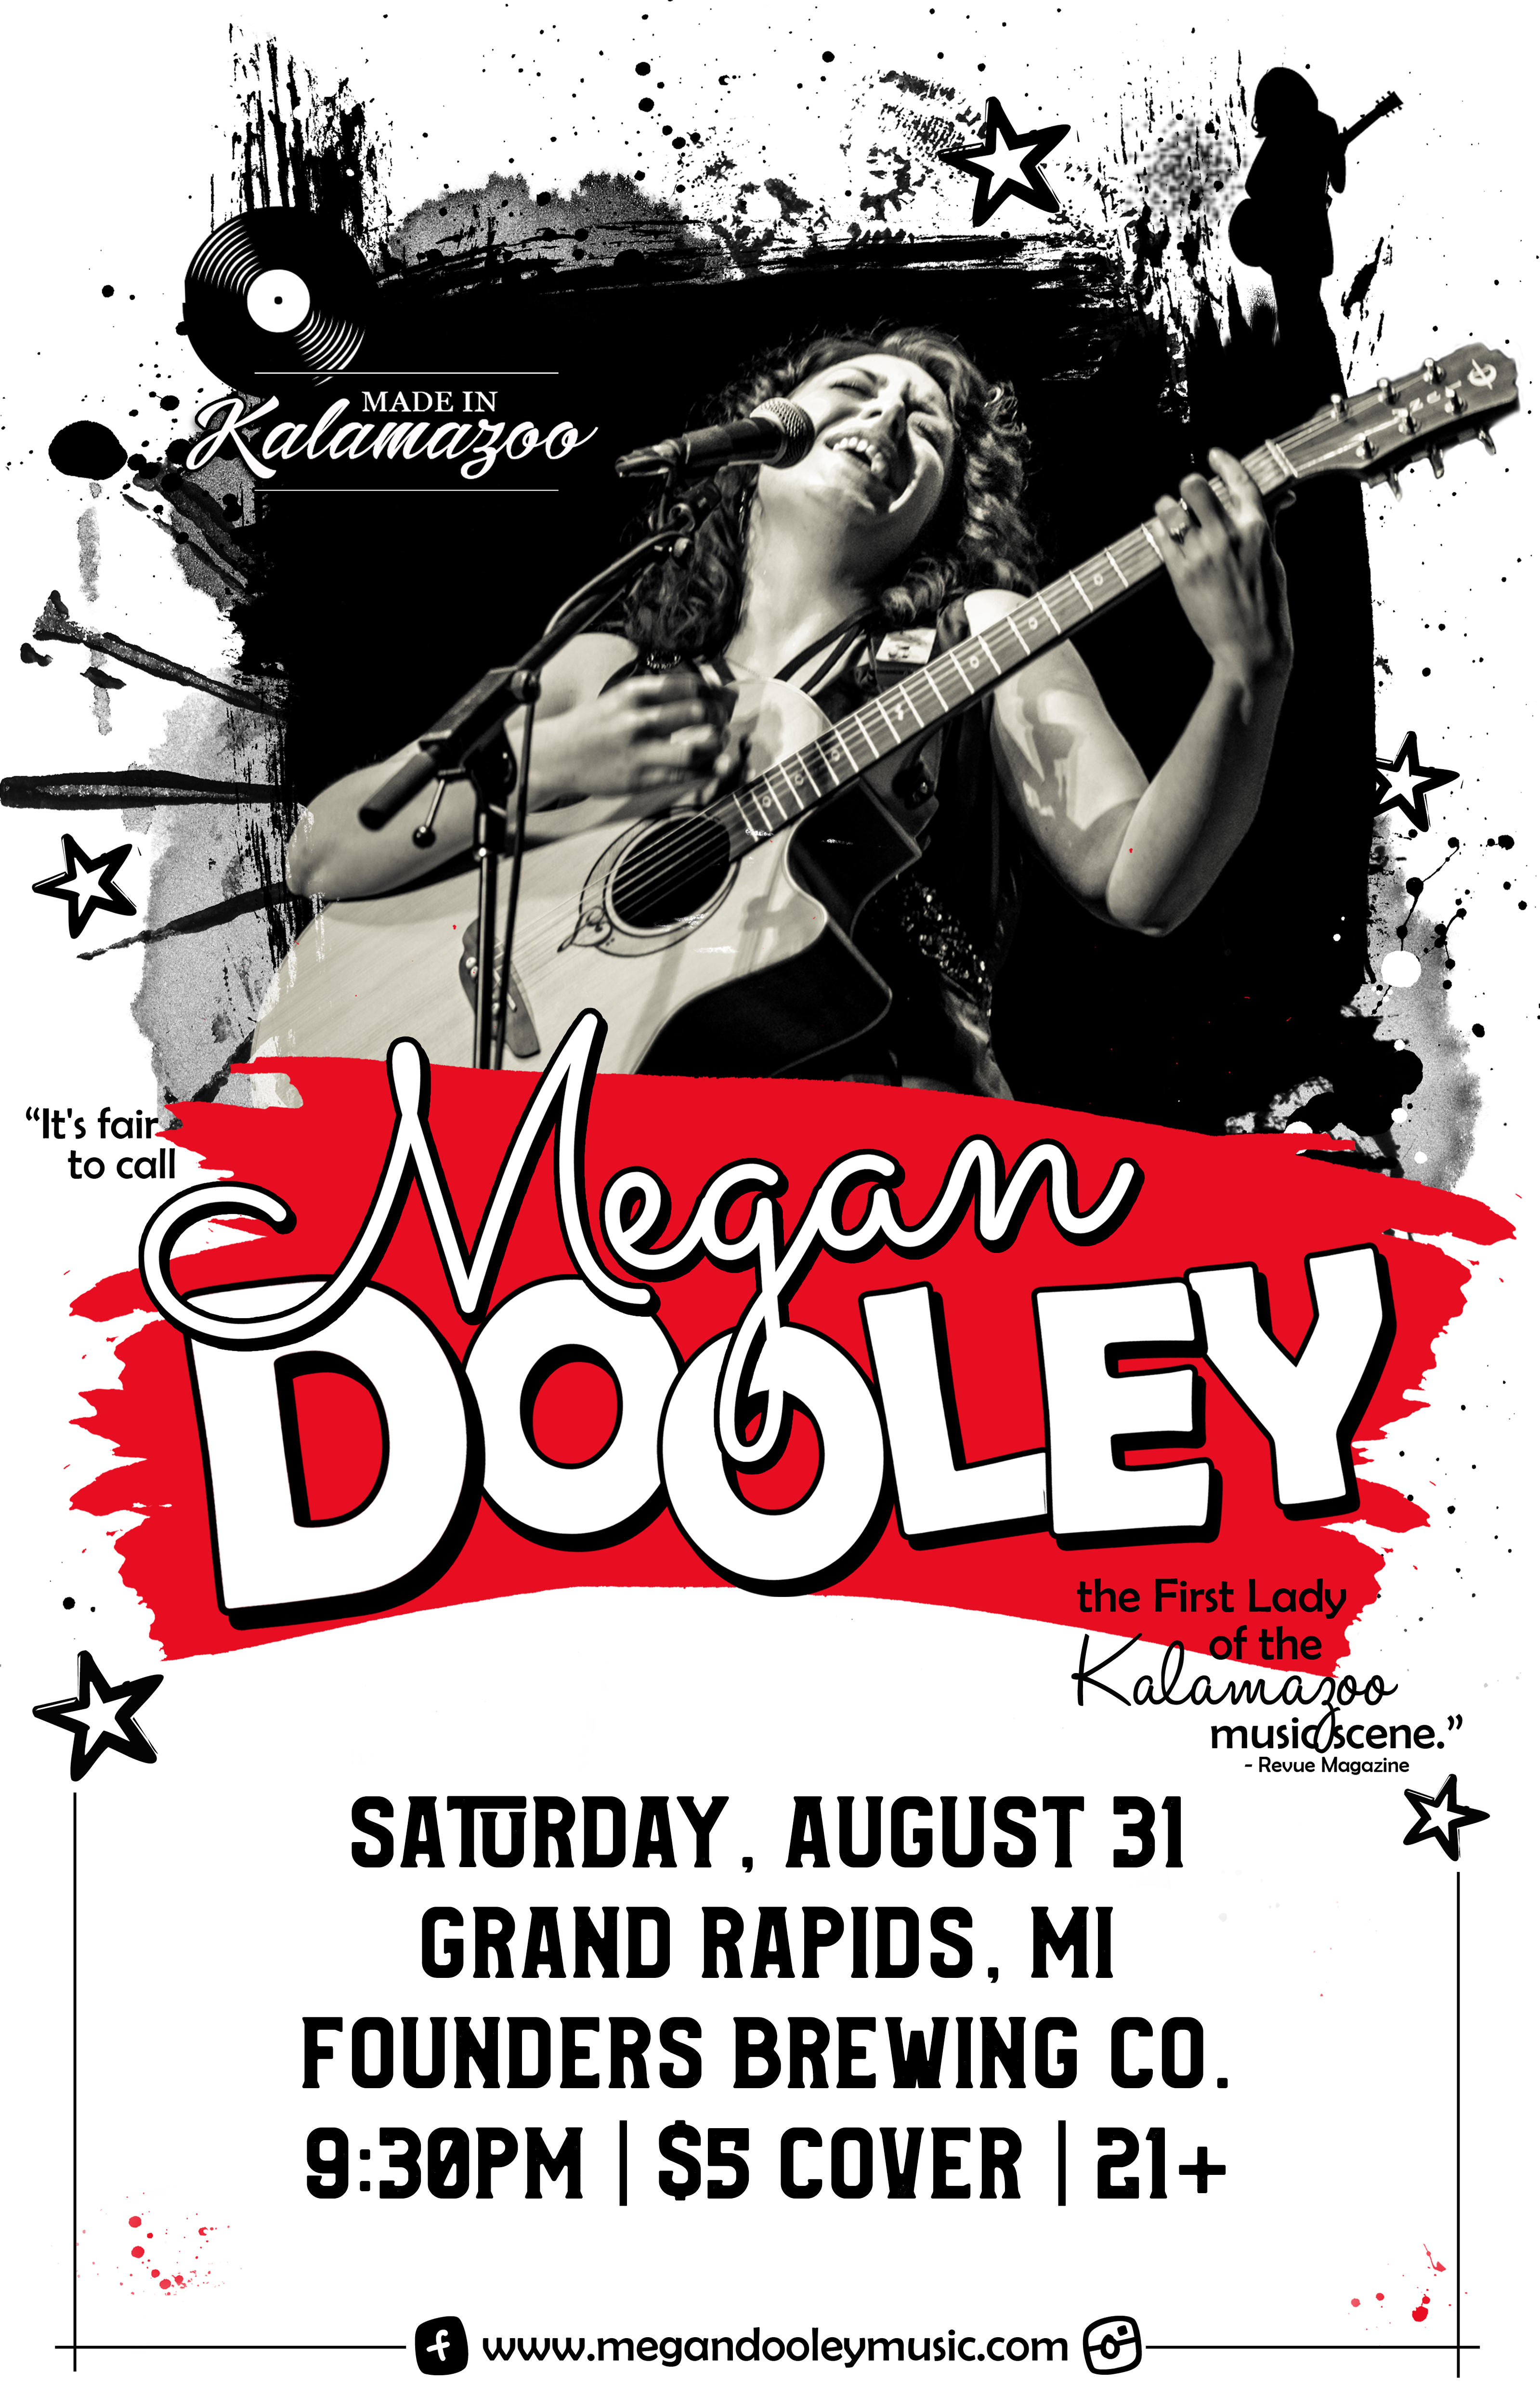 Megan Dooley event poster hosted by Founders Brewing Co.